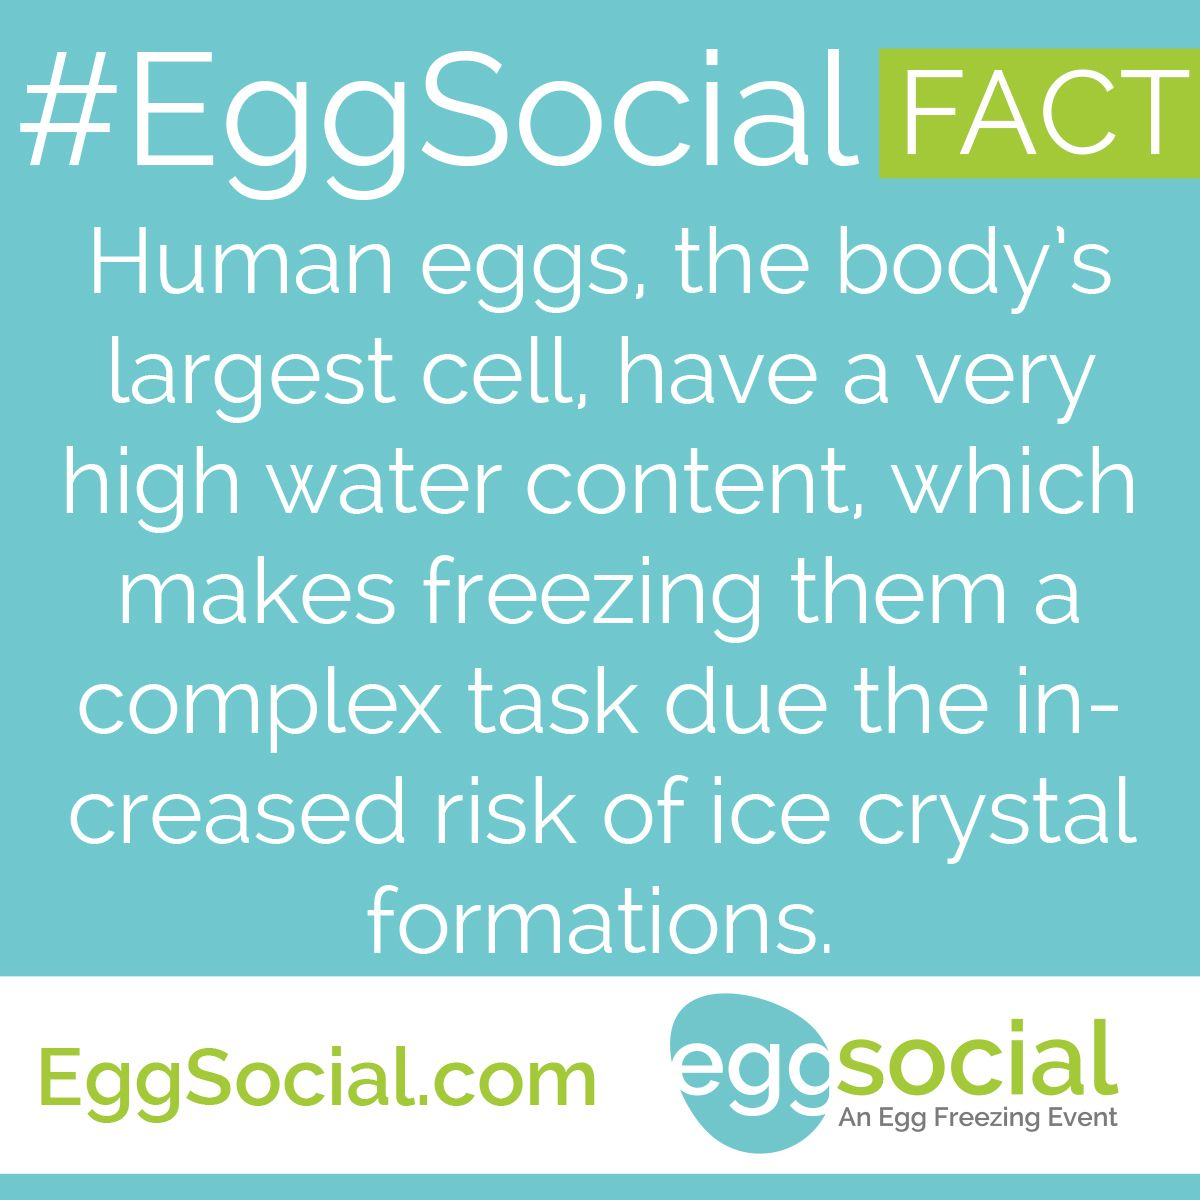 #EggSocial Fact: Human eggs, the body's largest cell, have a very high water content, which makes freezing them a complex task due the increased risk of ice crystal formations.  JOIN OUR NEXT #EggSocial. LIMITED SEATING AVAILABLE. RESERVE YOUR SEAT TODAY: http://eggsocial.com/